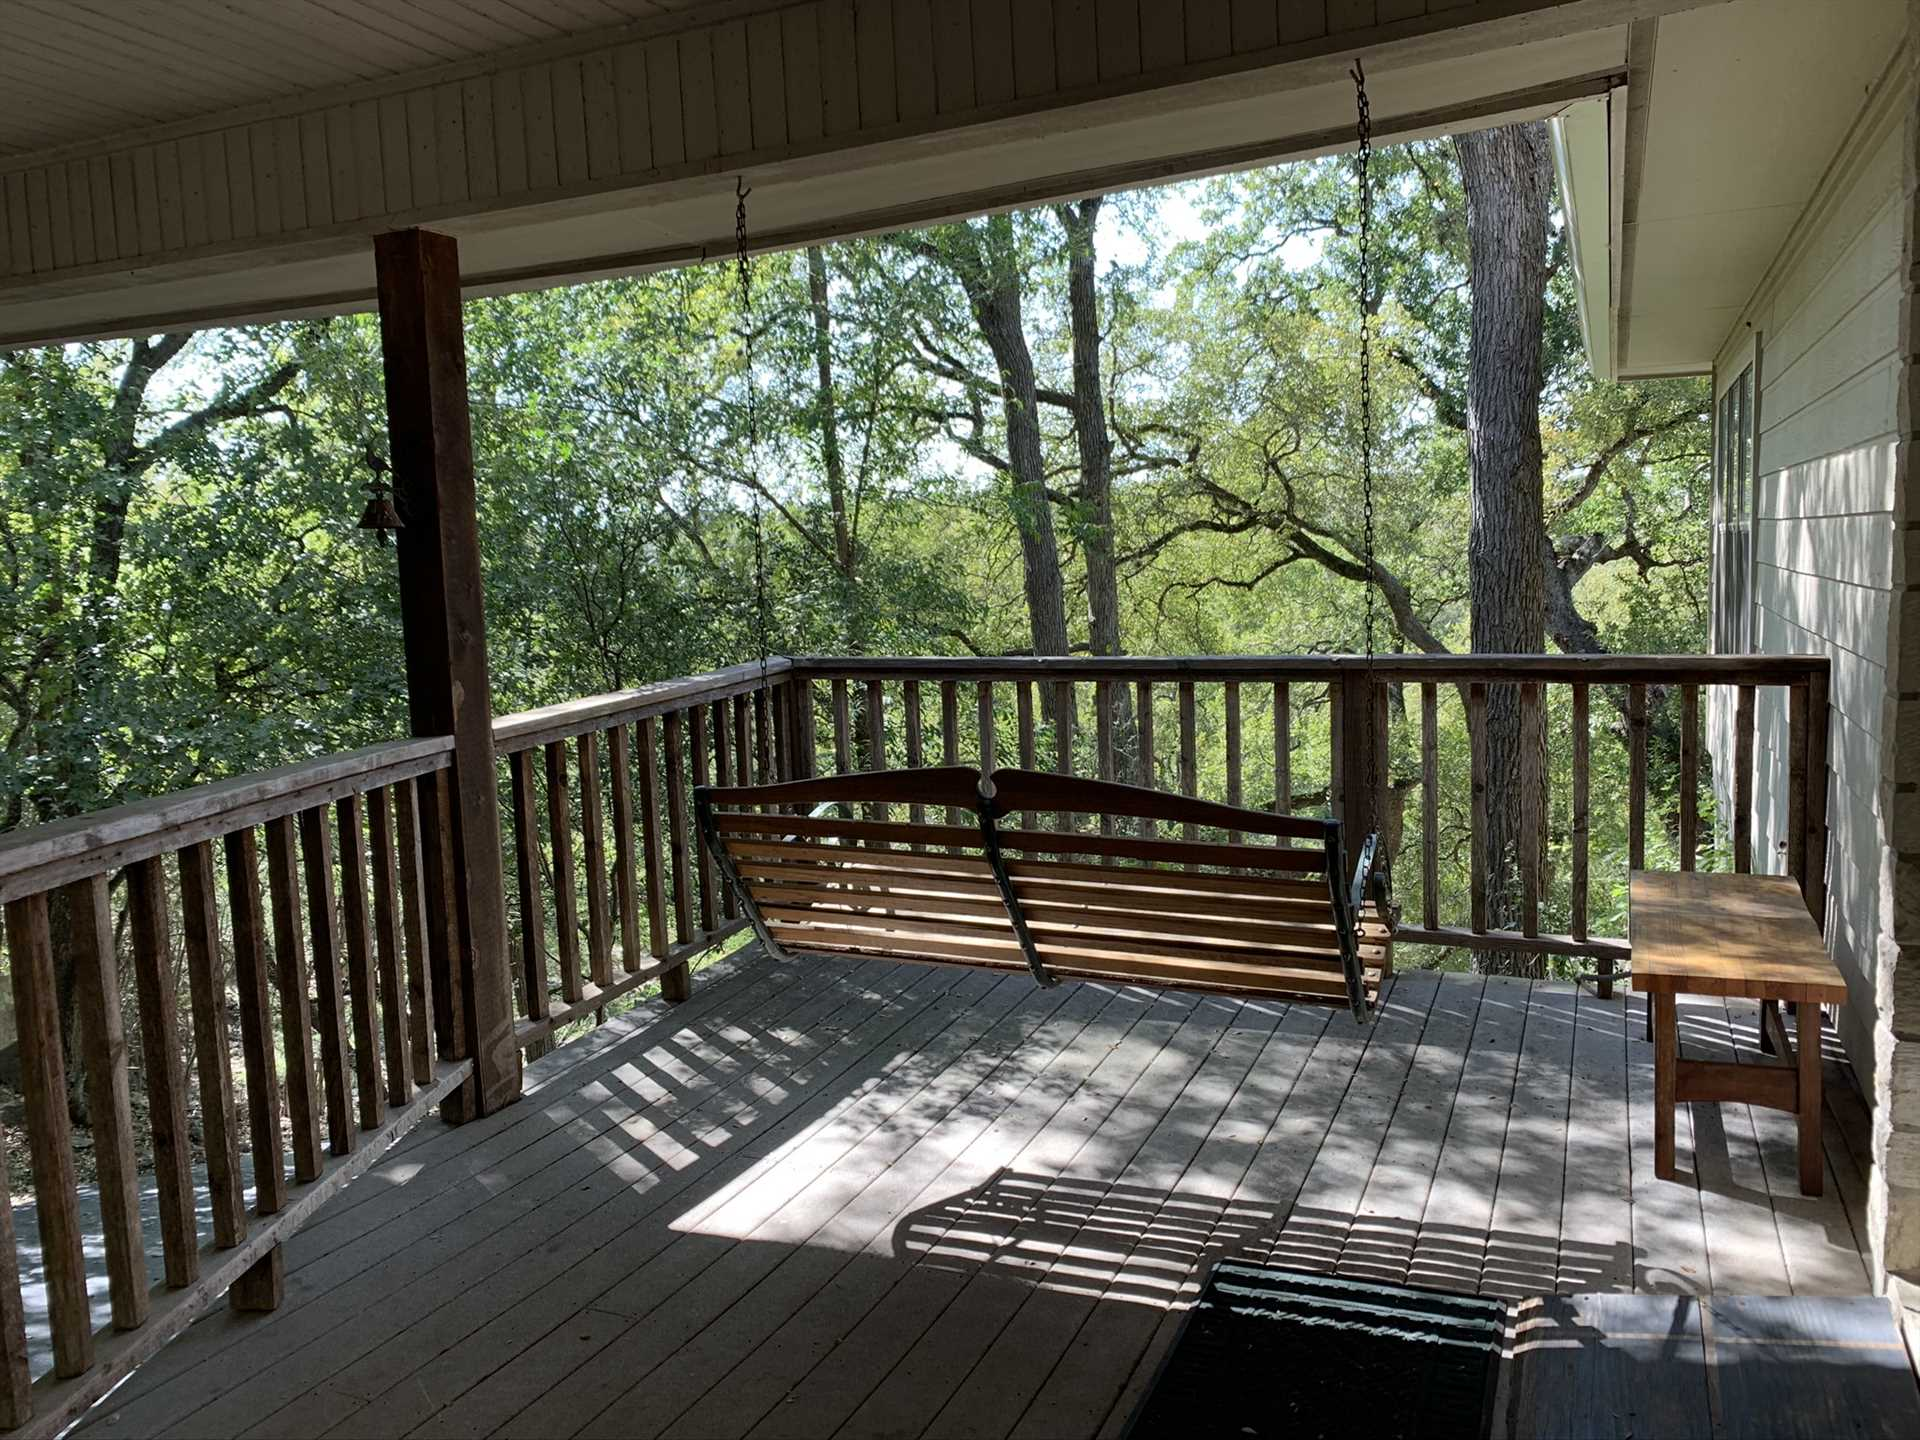 The side patio has a porch swing that provides a more intimate relaxation space.